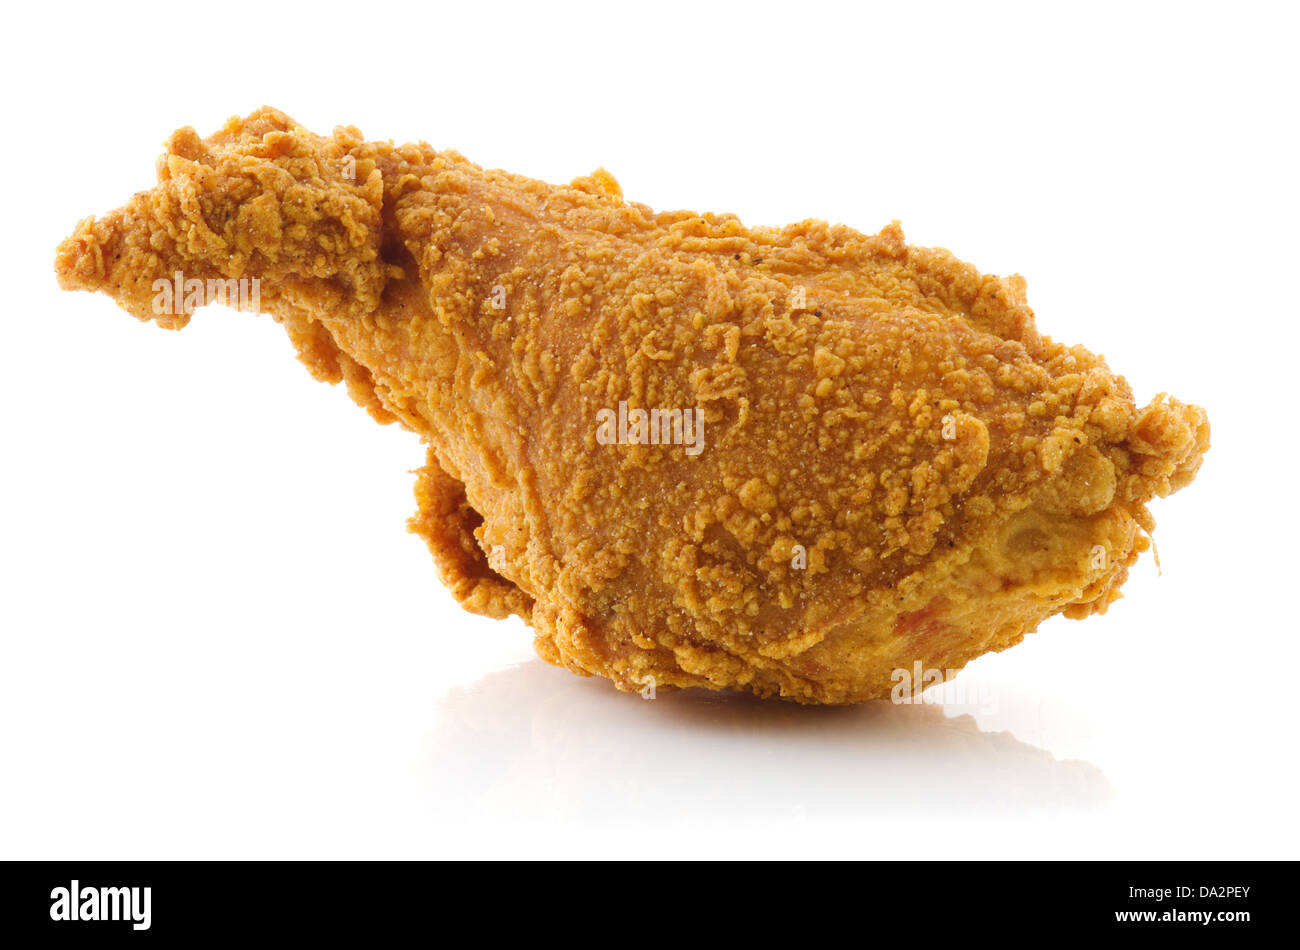 Deep Fried chicken drumstick isolated on white background. - Stock Image